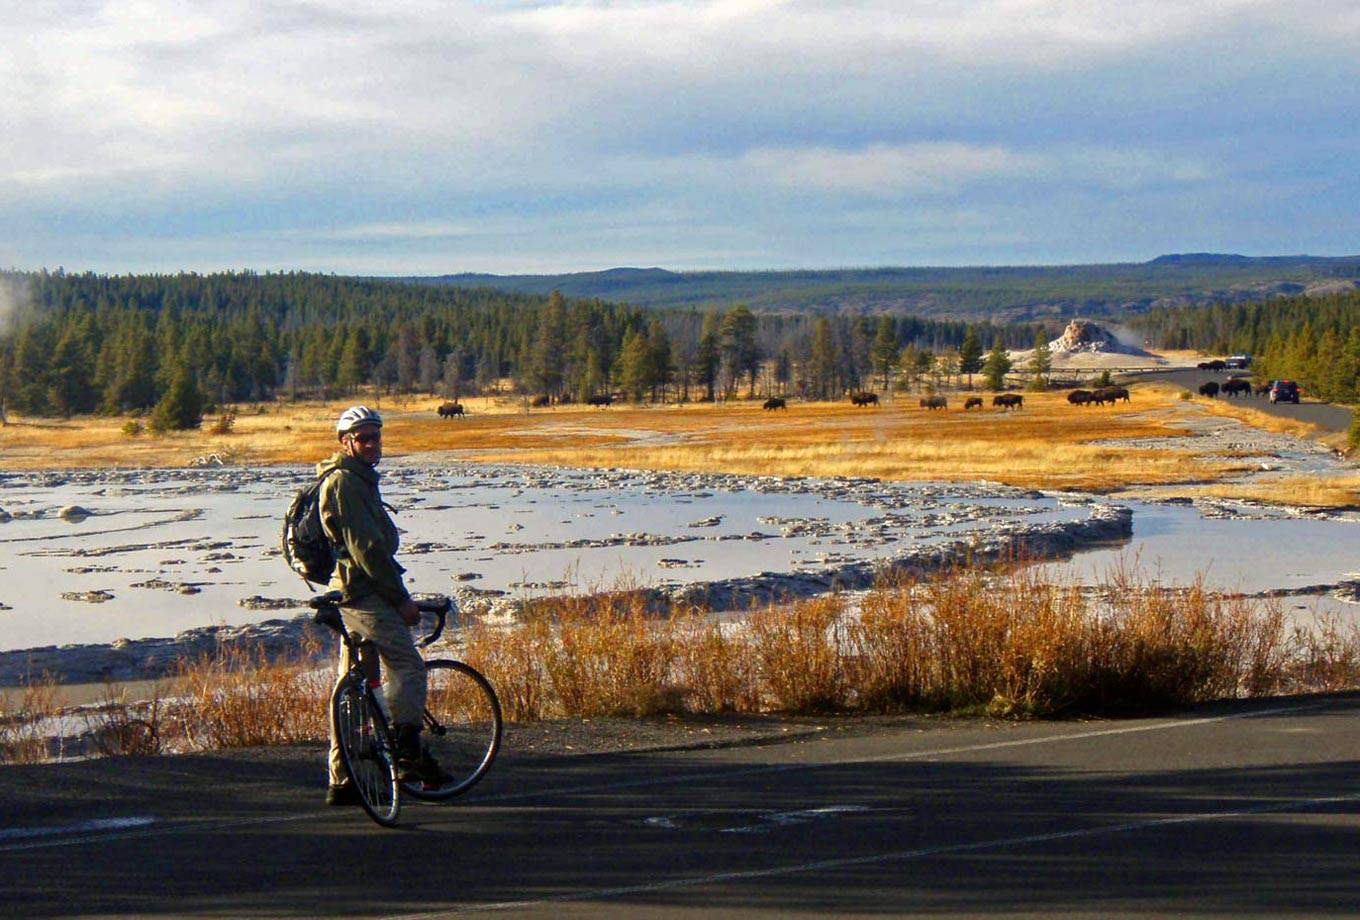 Bicycling in Yellowstone National Park